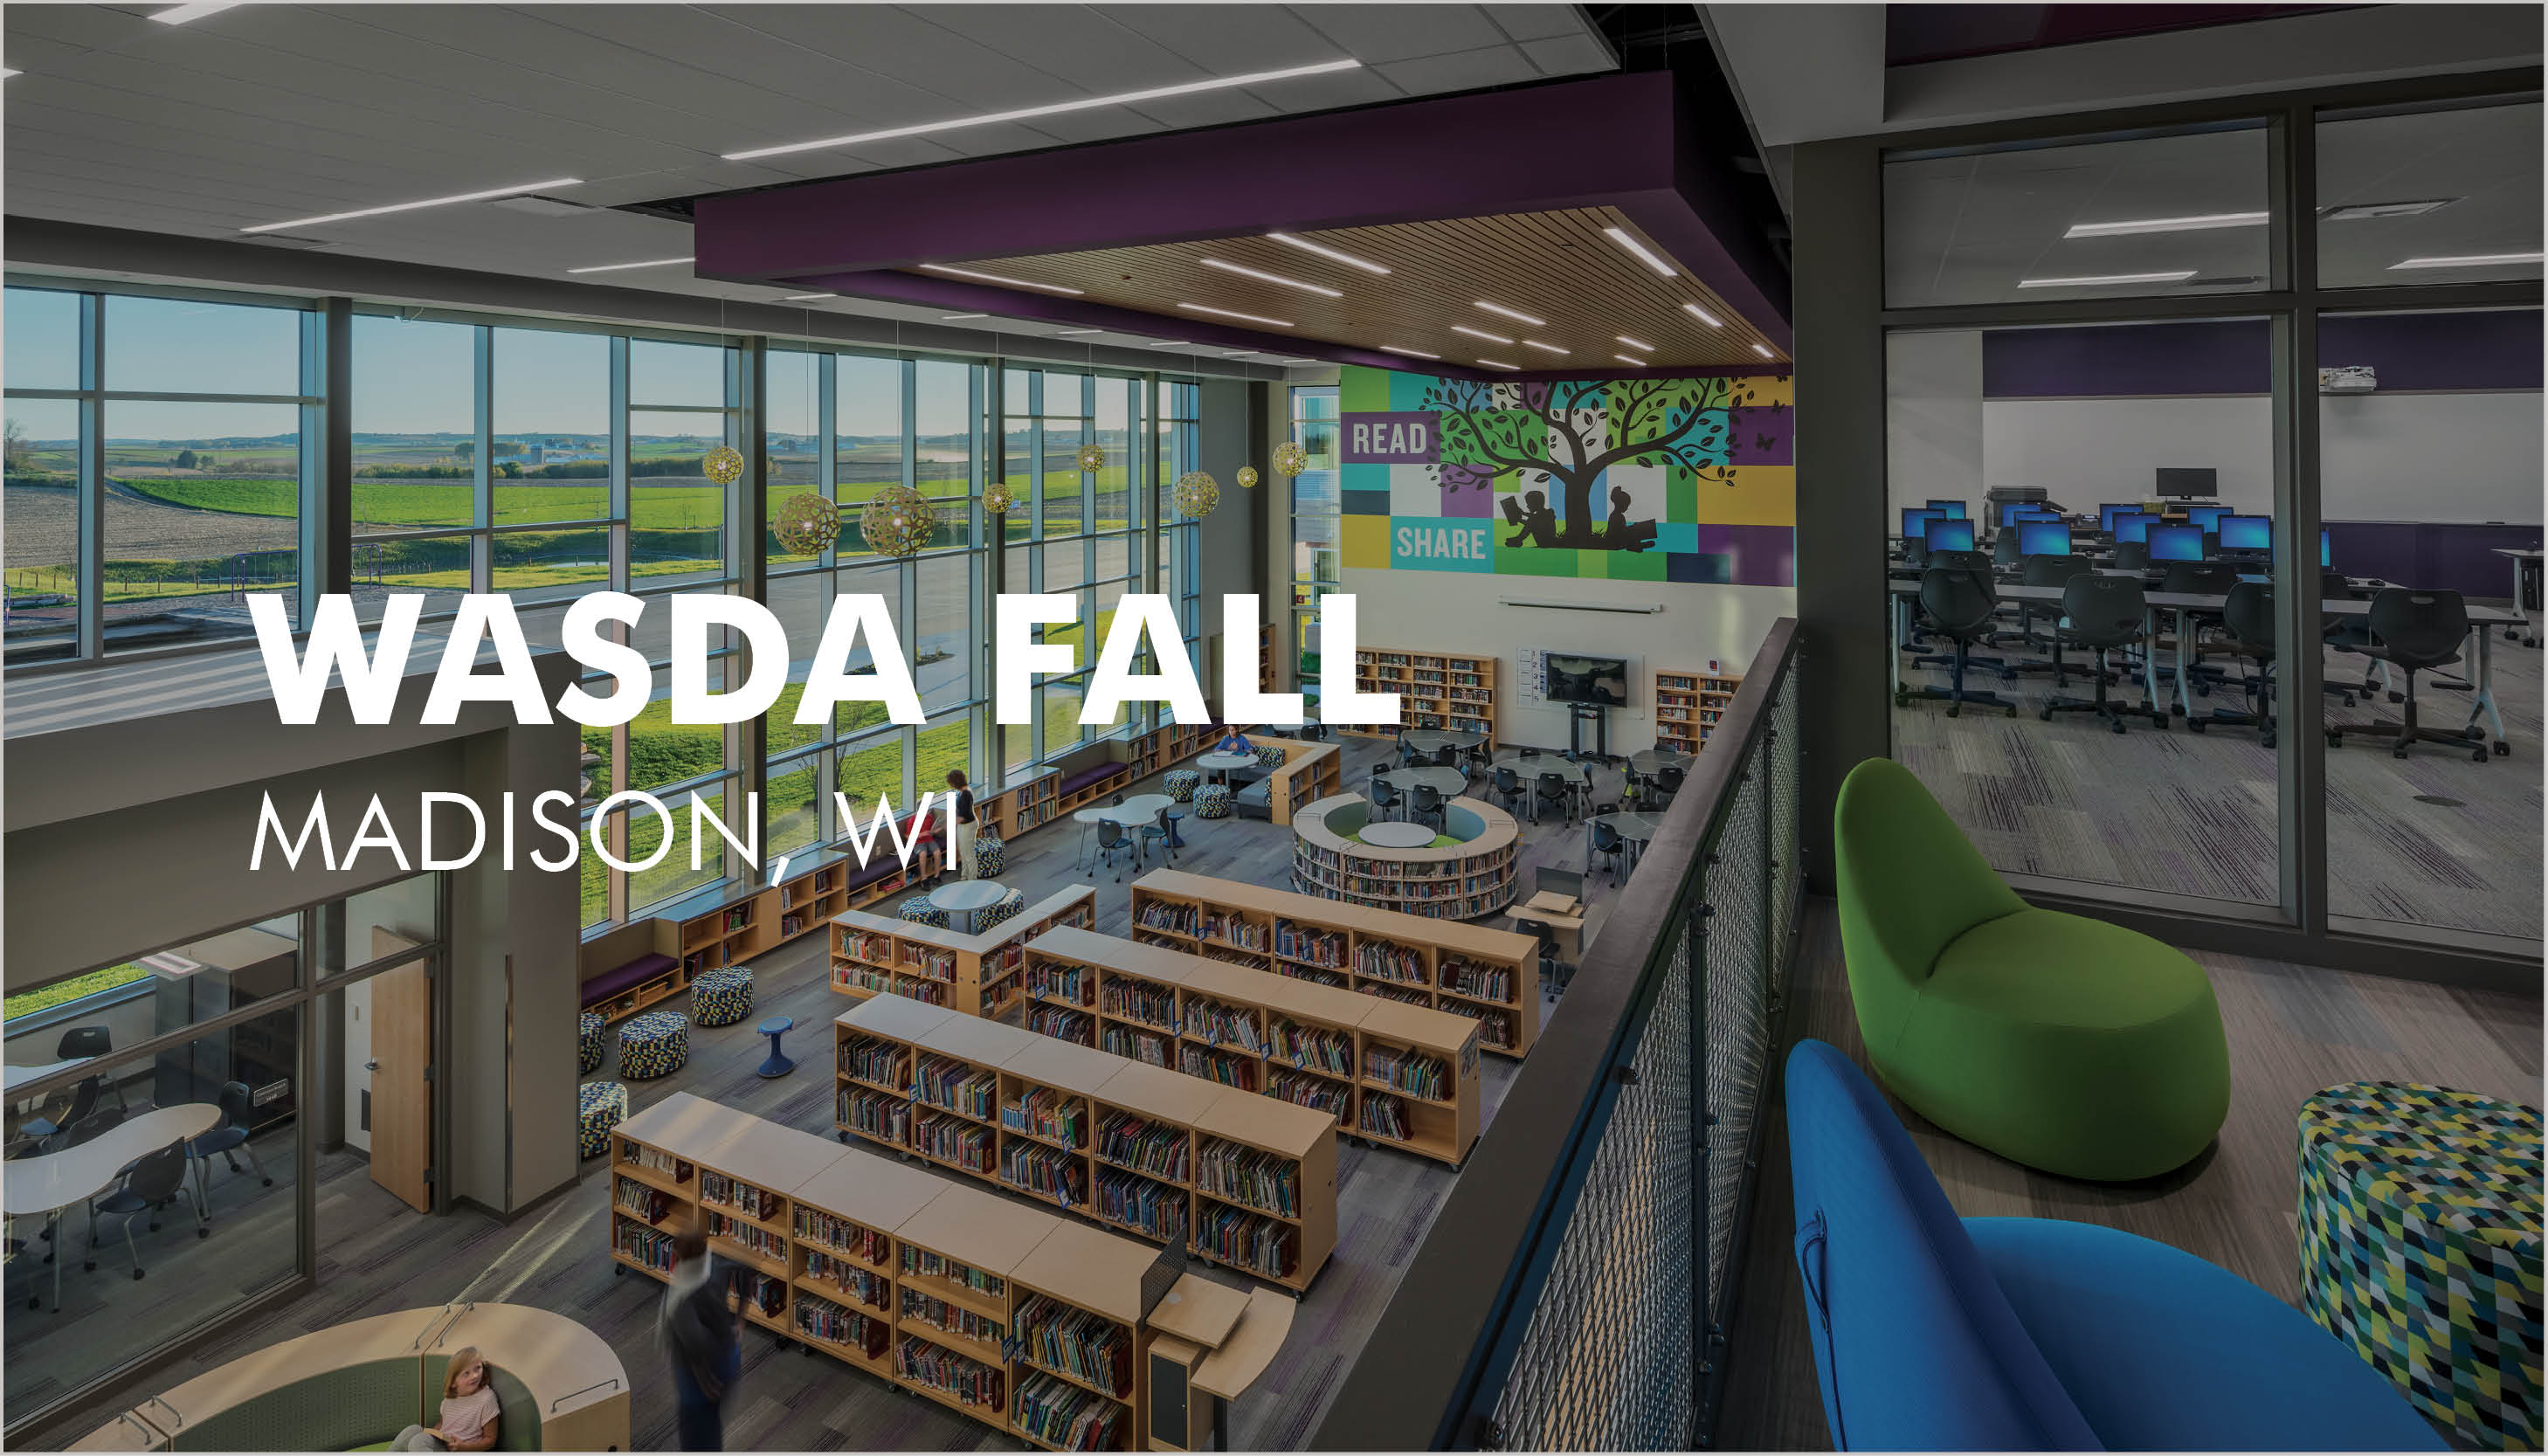 WASDA Fall Superintendents Conference 2019 Image